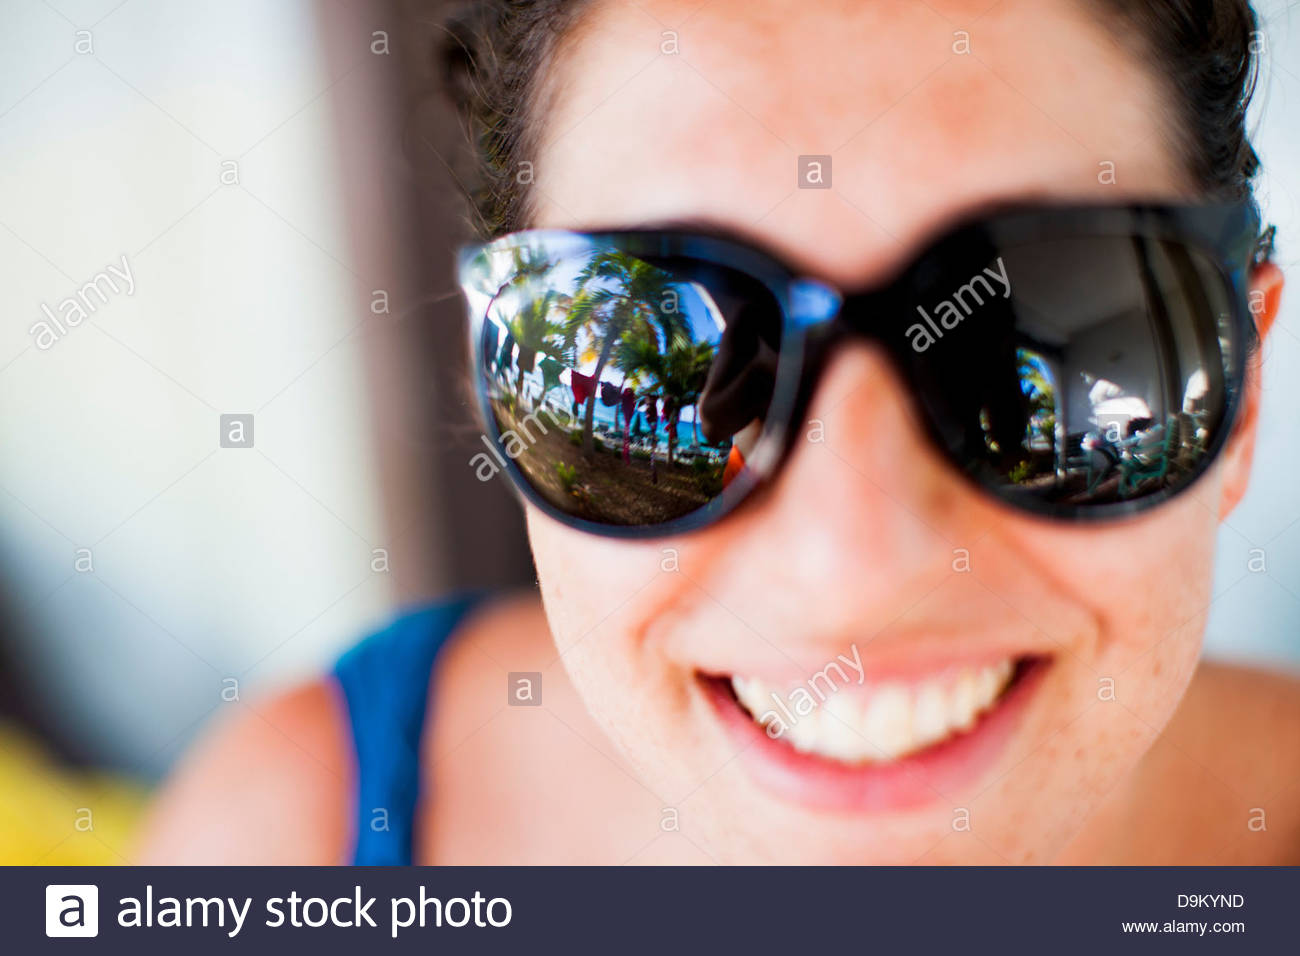 Drying bathing suits reflected in woman's sunglasses - Stock Image